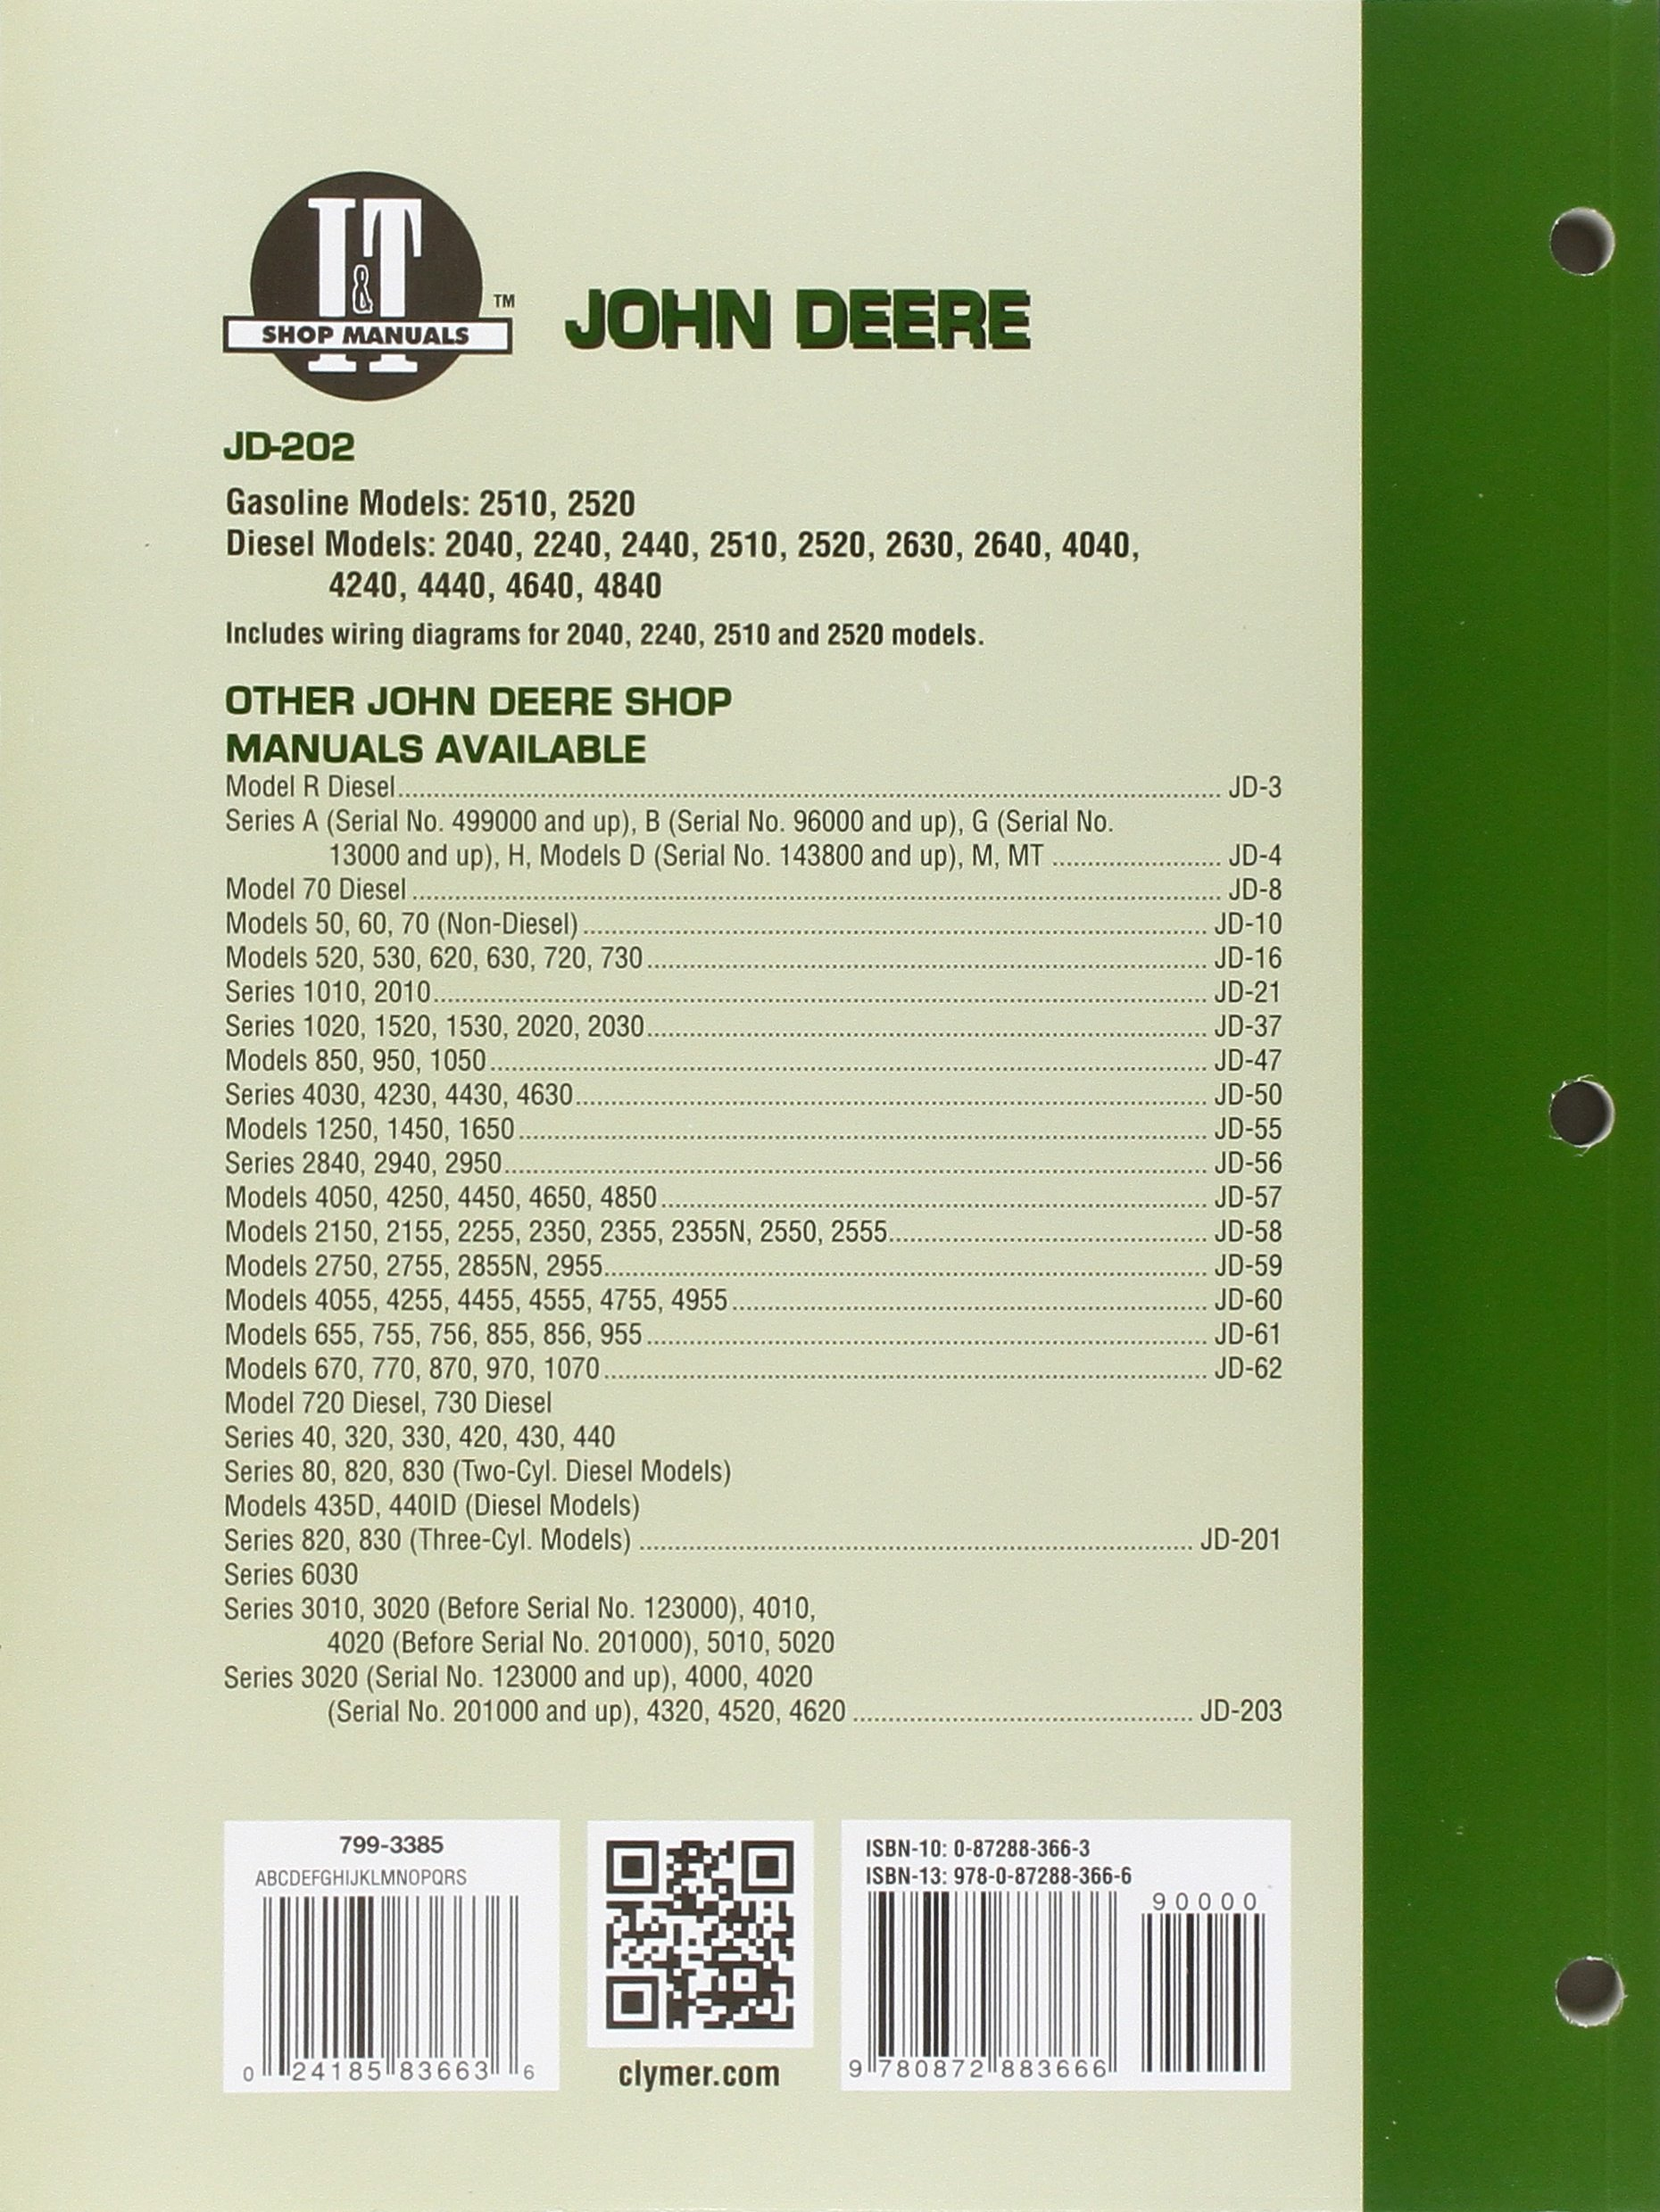 John Deere 2440 Wiring Diagram Modern Design Of 2510 Harness Shop Manual Jd 202 Models 2520 2040 2240 Rh Amazon Com 20 Series